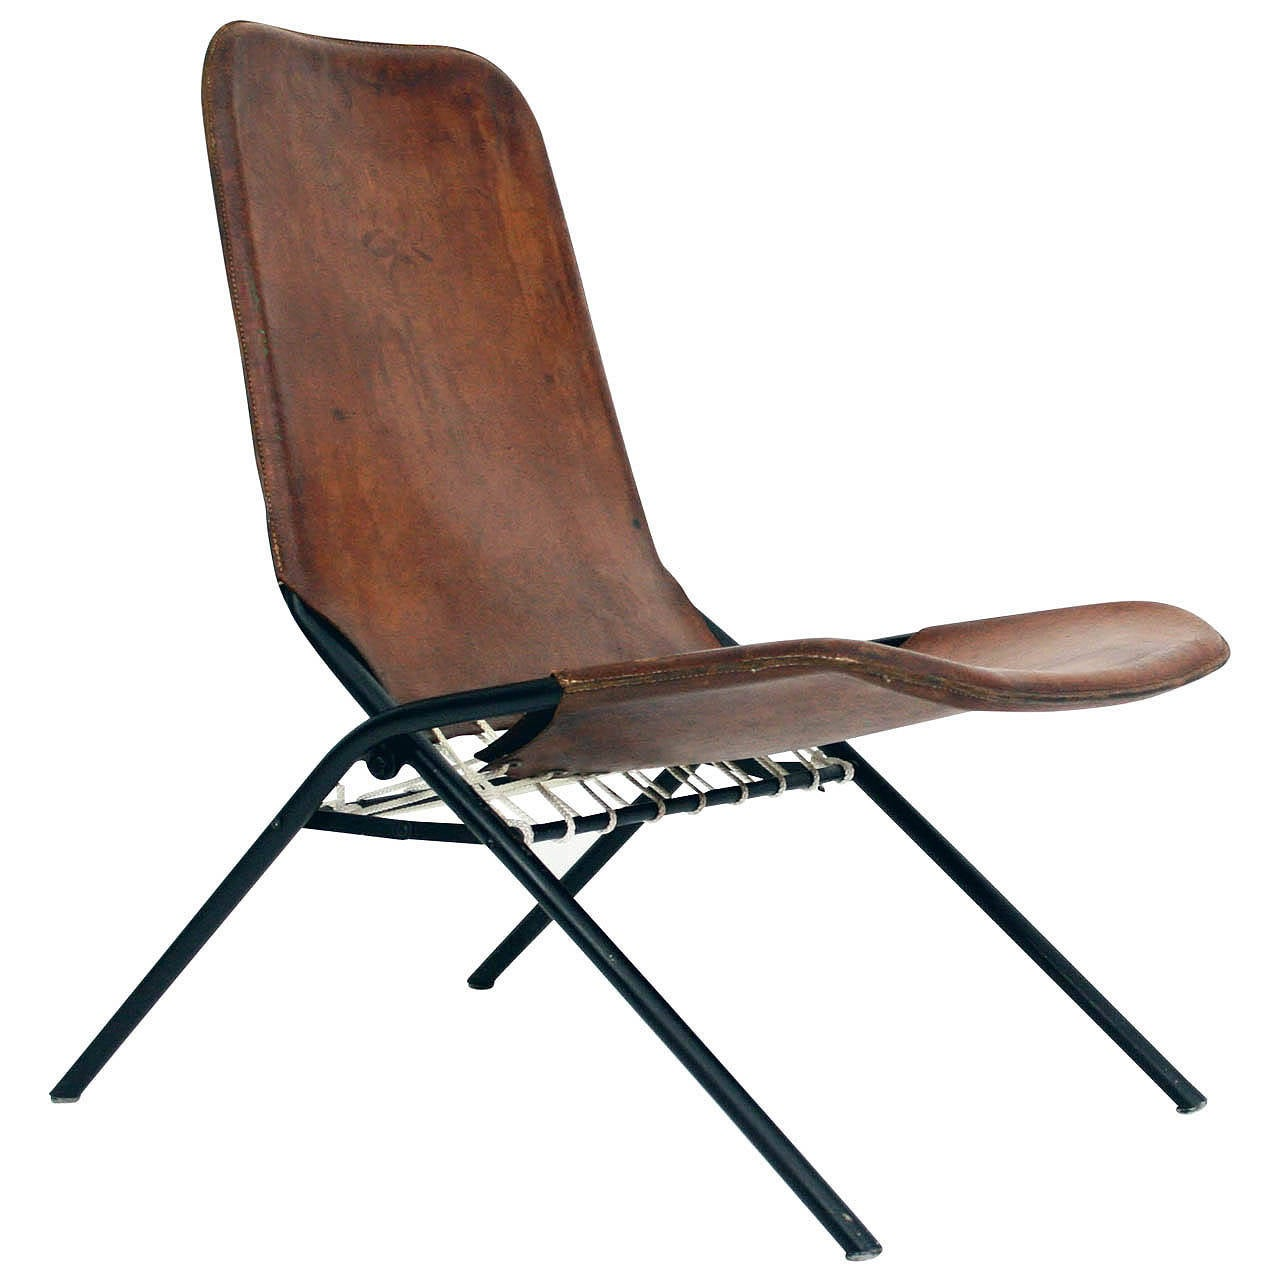 foldable lounge chair revolving with price rare 1950s olof pira fällstol folding leather